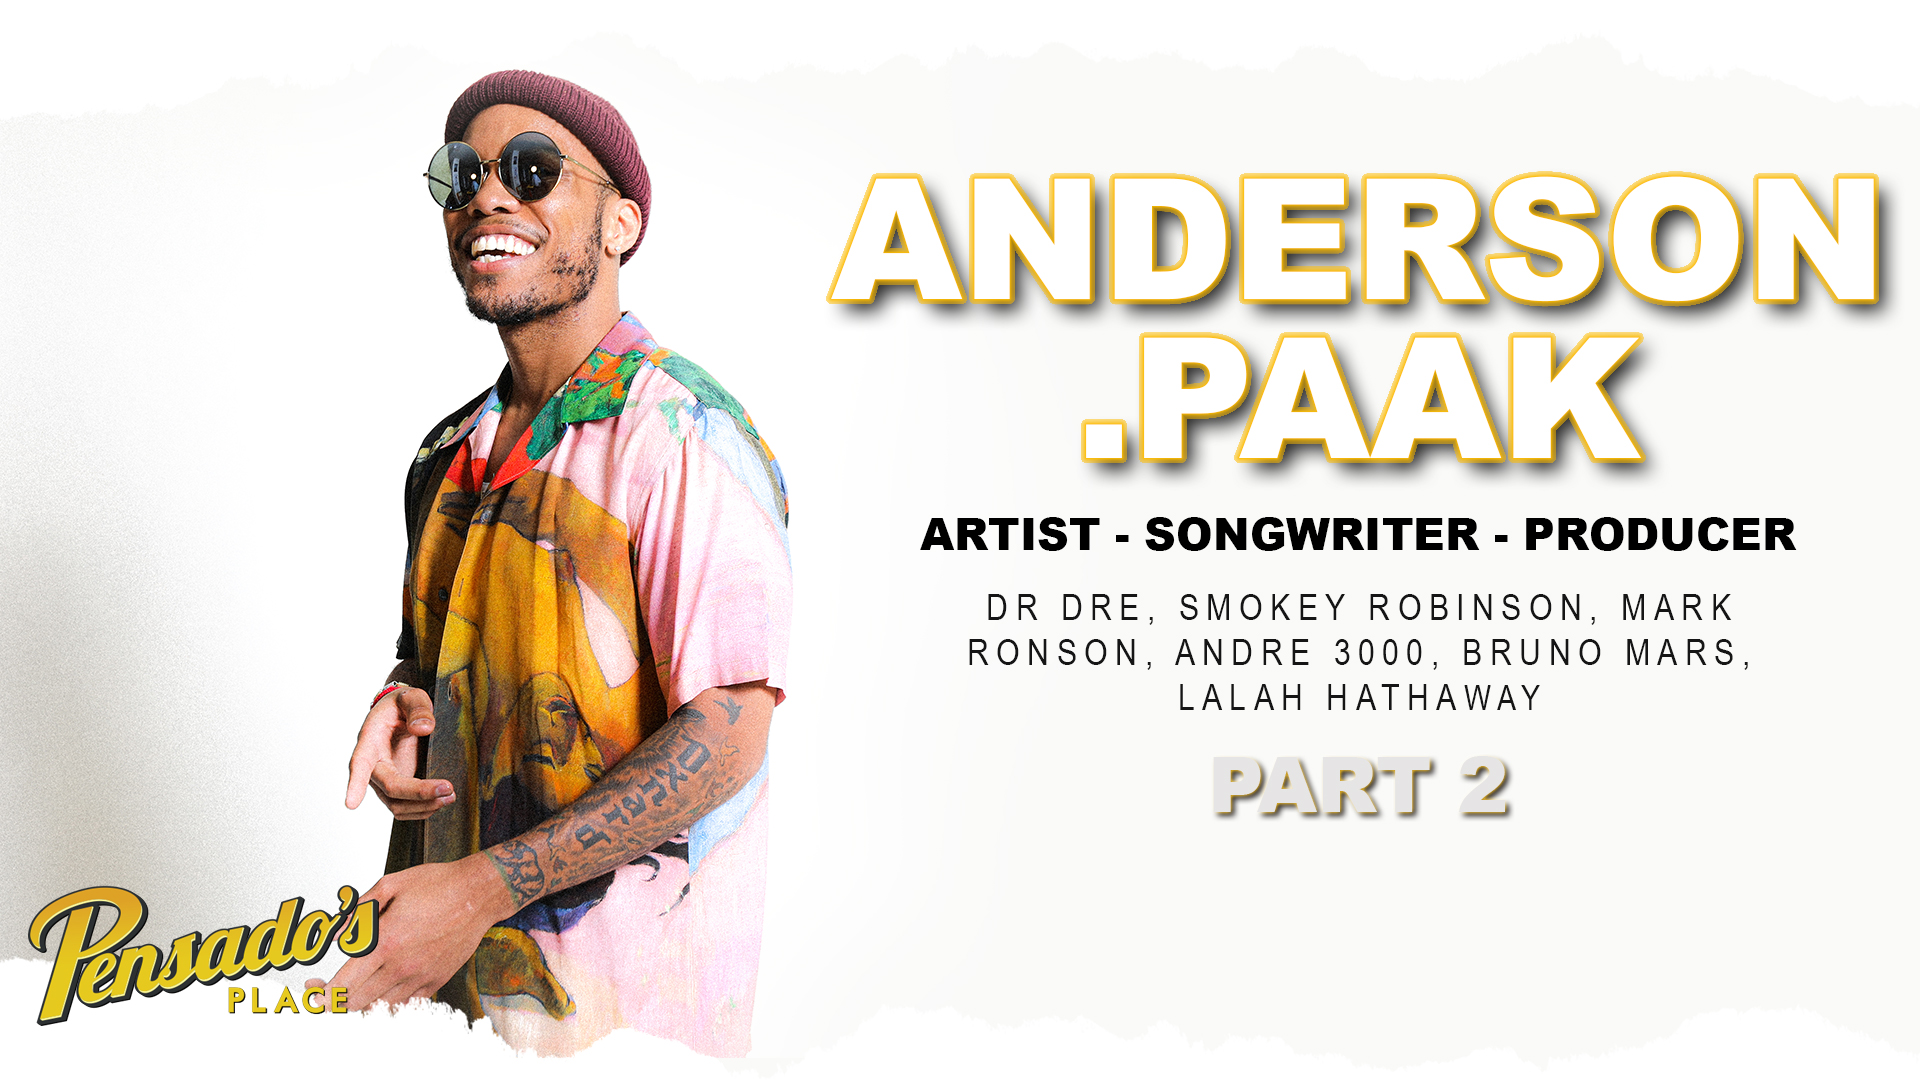 Artist / Songwriter / Producer Anderson .Paak (Part 2)